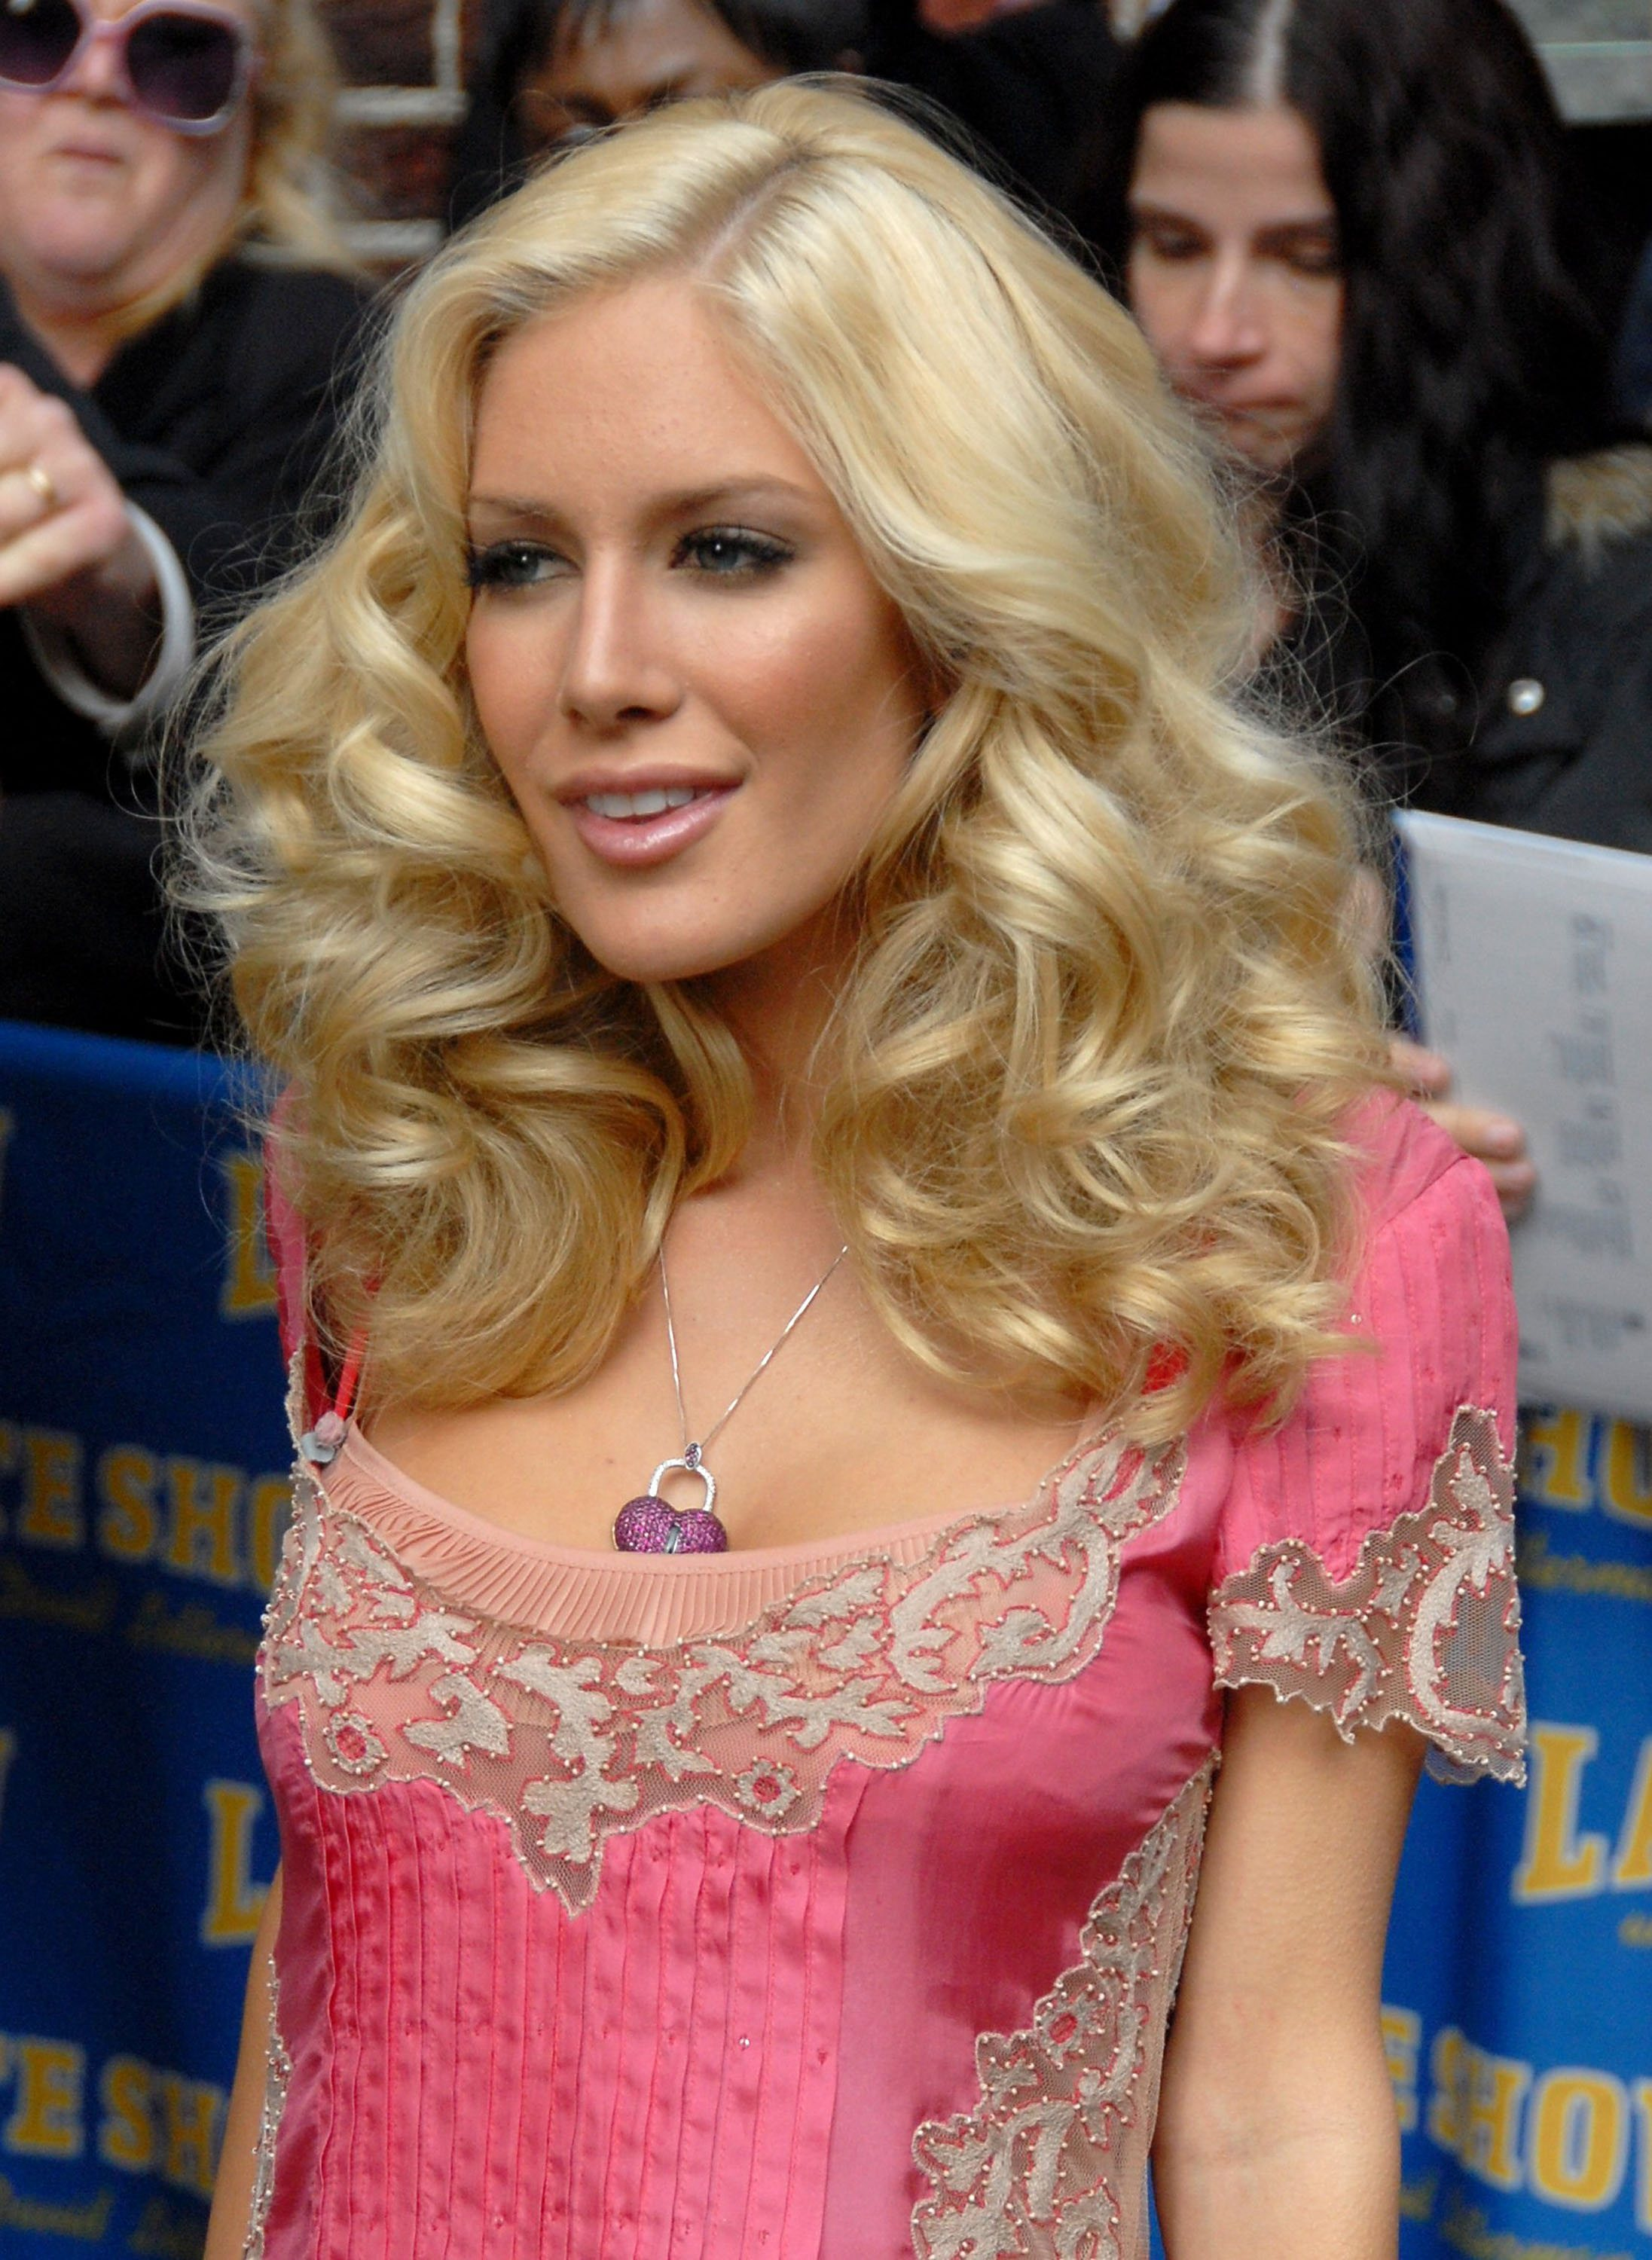 Heidi Montag Slept with Enough People to Do 'Letterman'